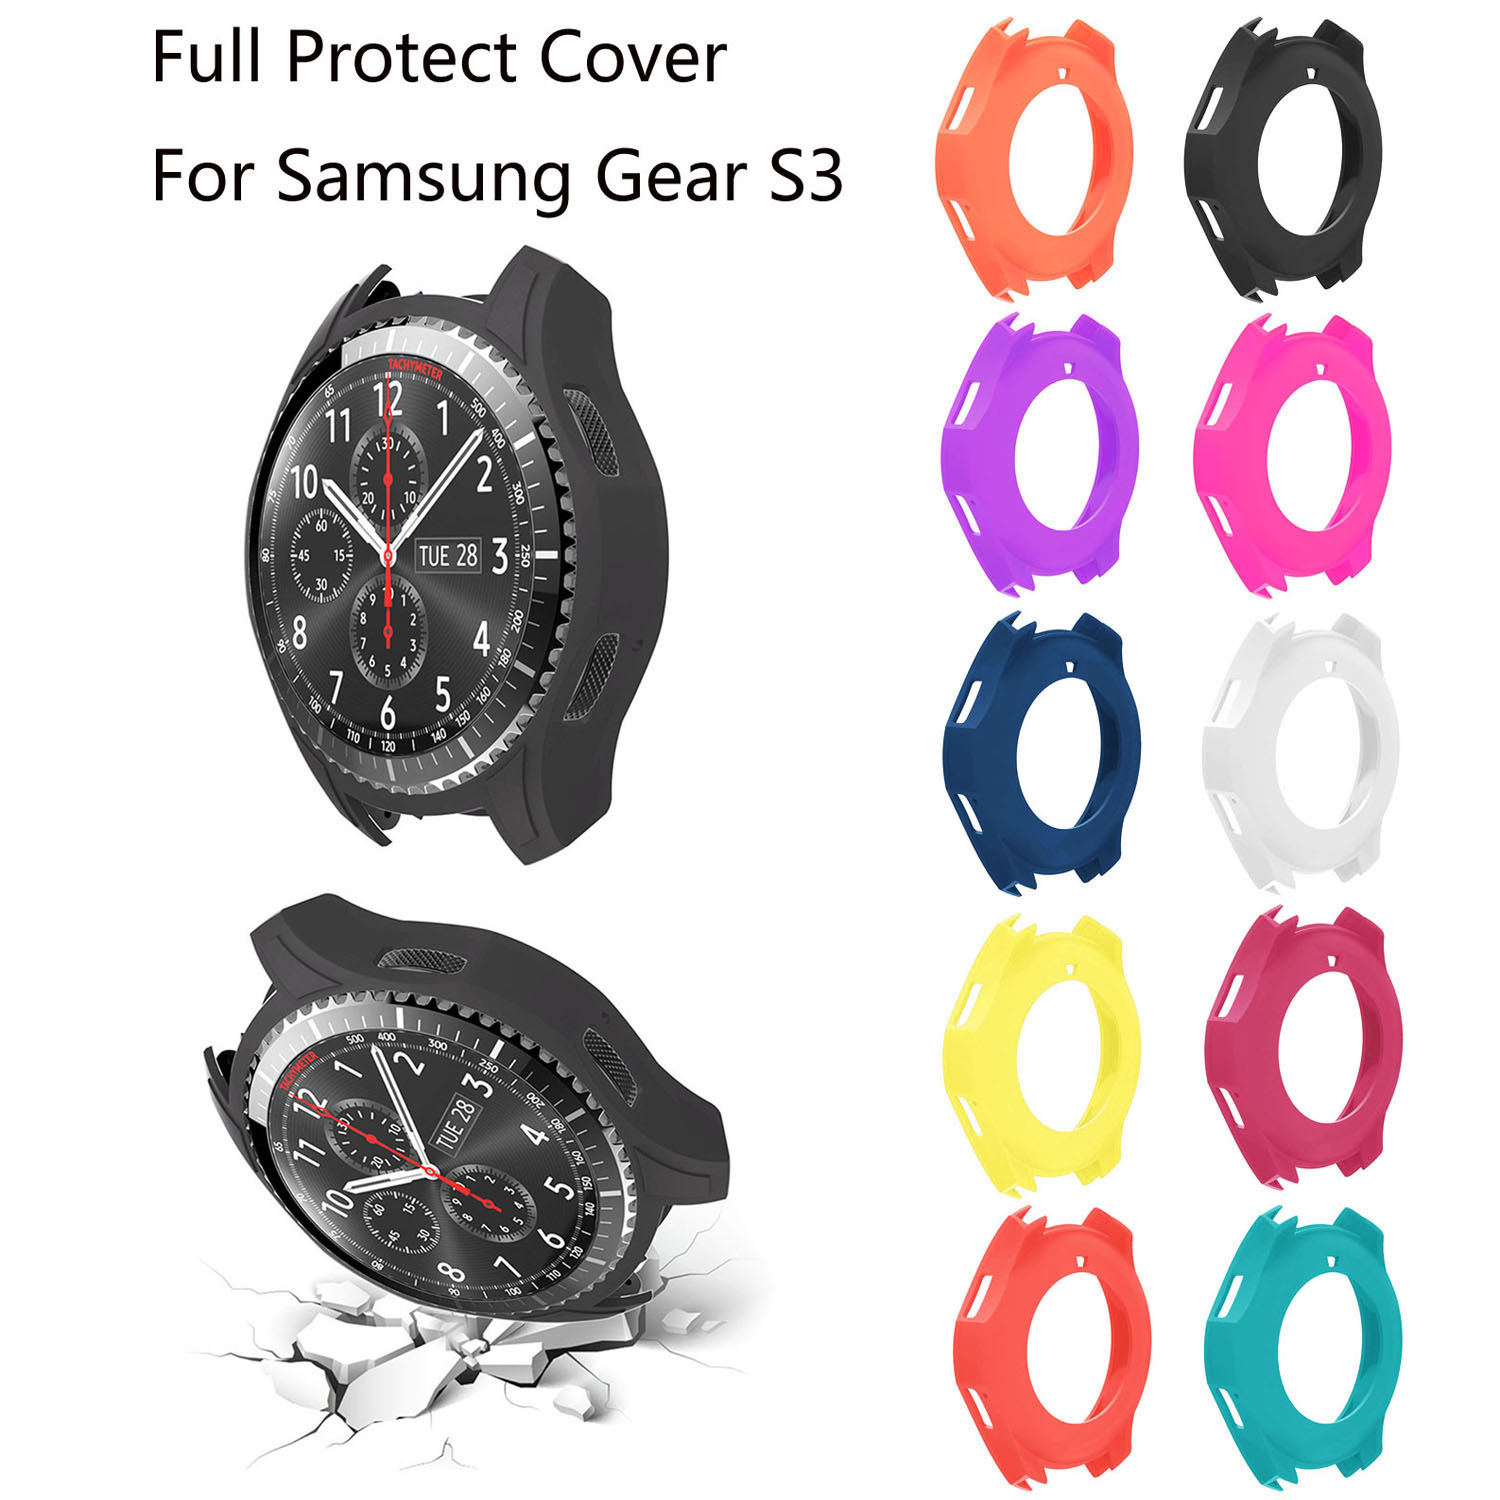 Soft Silicone Protective Cover for Samsung Galaxy Gear S3 Frontier Smart Watch Case Cover Watch Band fashion protective aluminum cover silicone back case for samsung galaxy note 2 n7100 grey